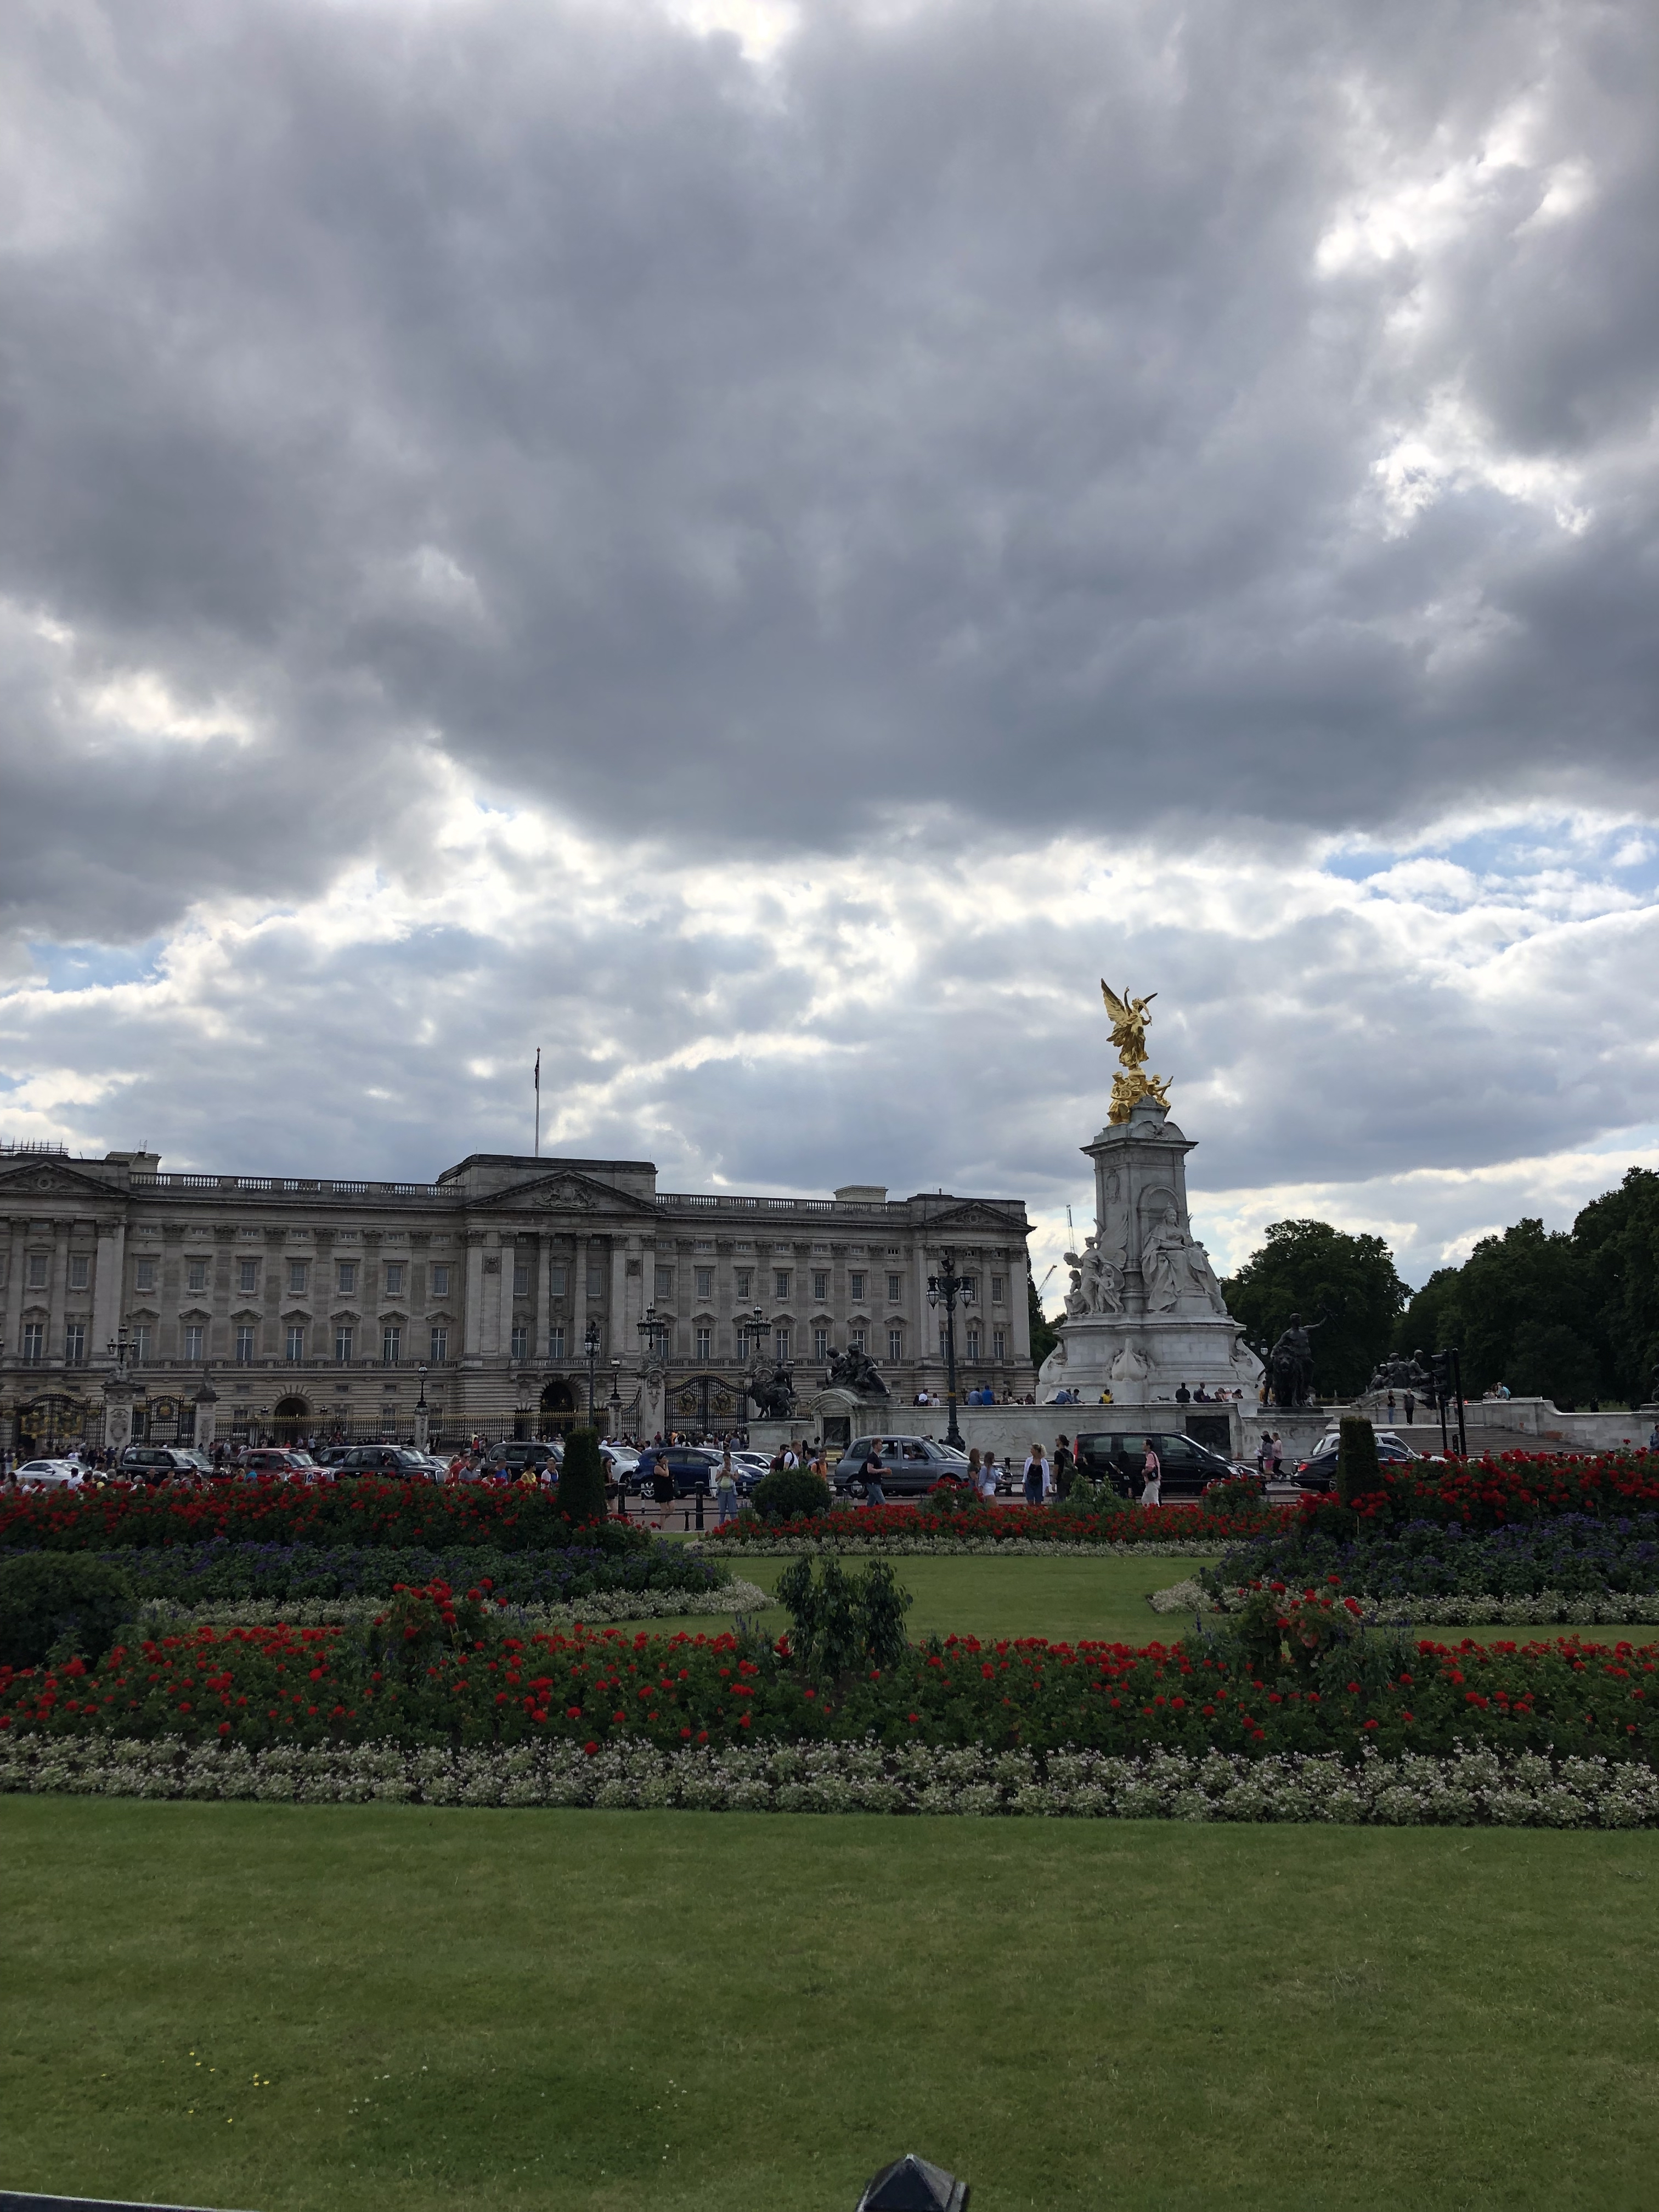 Buckingham palace with gray skies